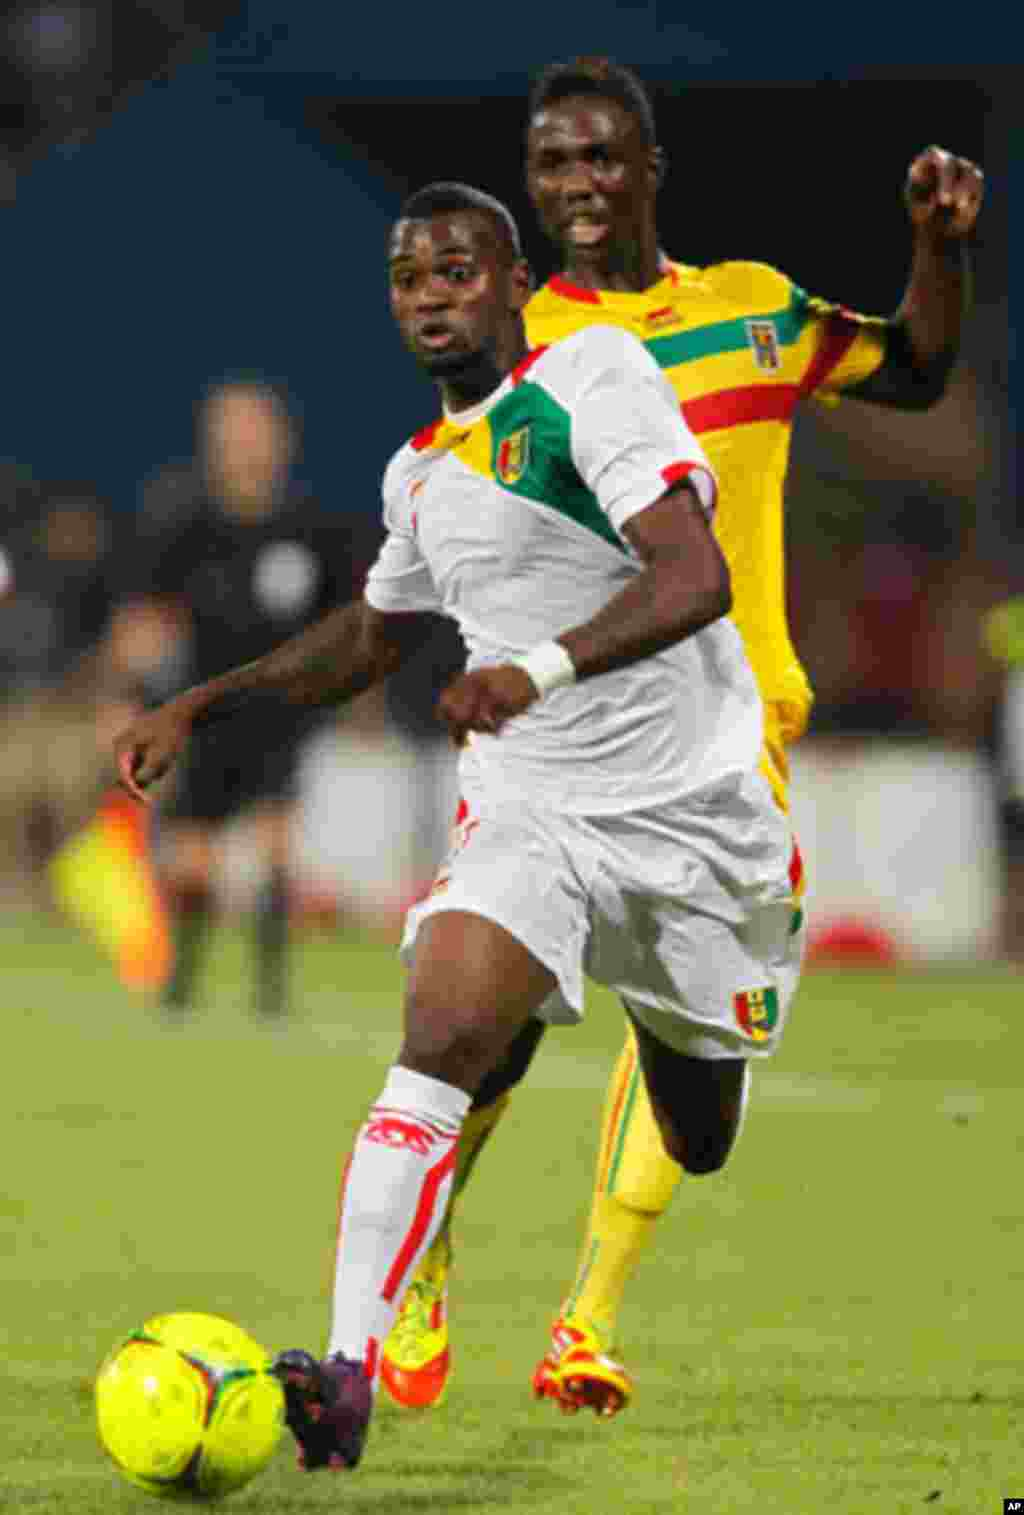 Guinea's Abdoul Razzagui Camara challenges Mali's Modibo Maiga for the ball during their African Nations Cup Group D soccer match at Franceville Stadium